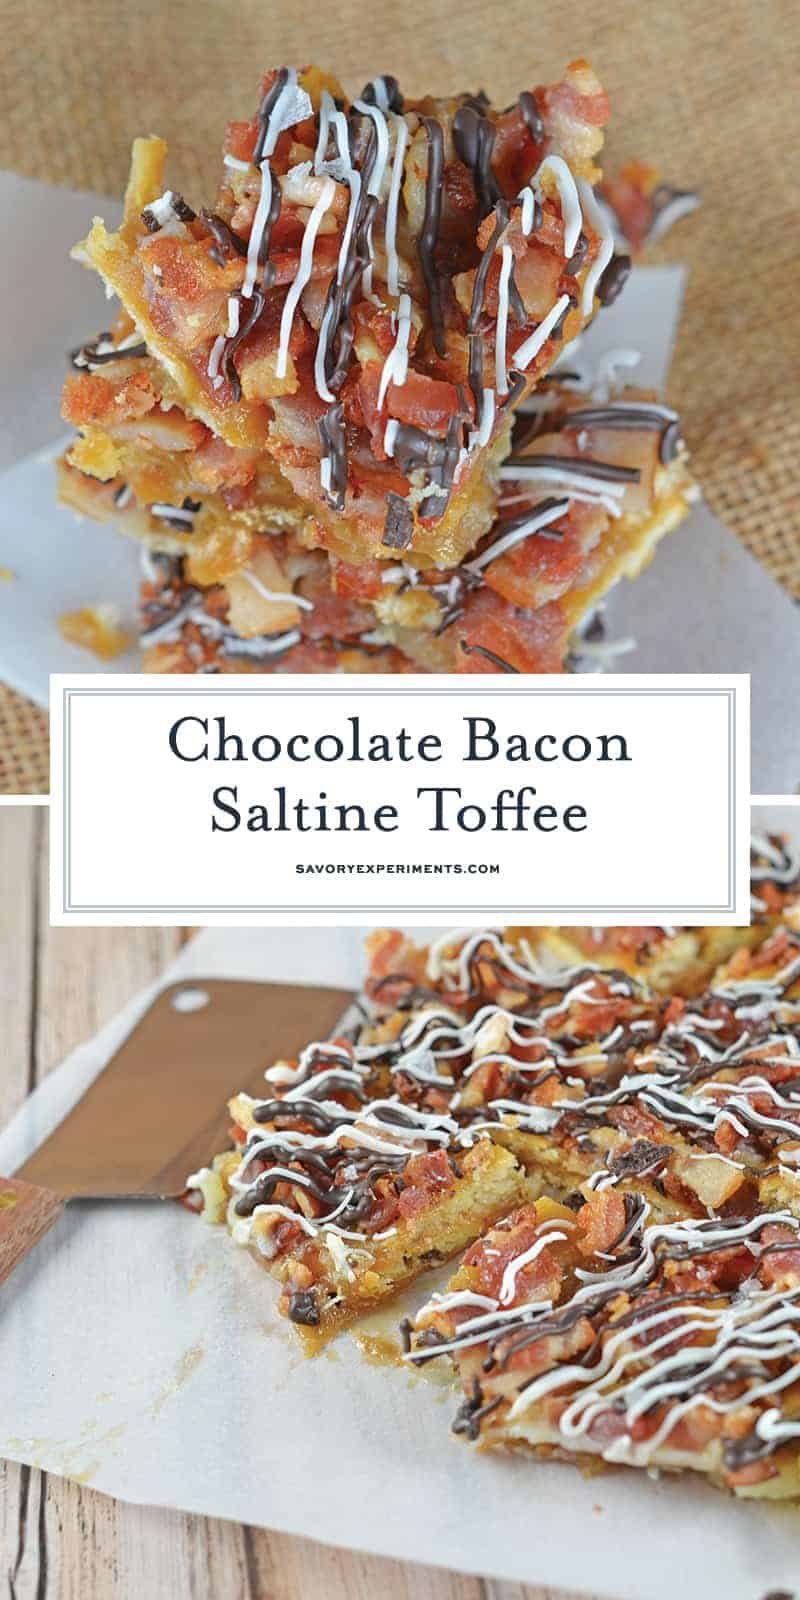 Chocolate Bacon Saltine Toffee is made up of crackers, bacon, and chocolate! So delicious, easy to make and the perfect addition to any holiday cookie tray! #saltinecrackertoffee #saltinetoffee #christmascrackrecipe www.savoryexperiments.com